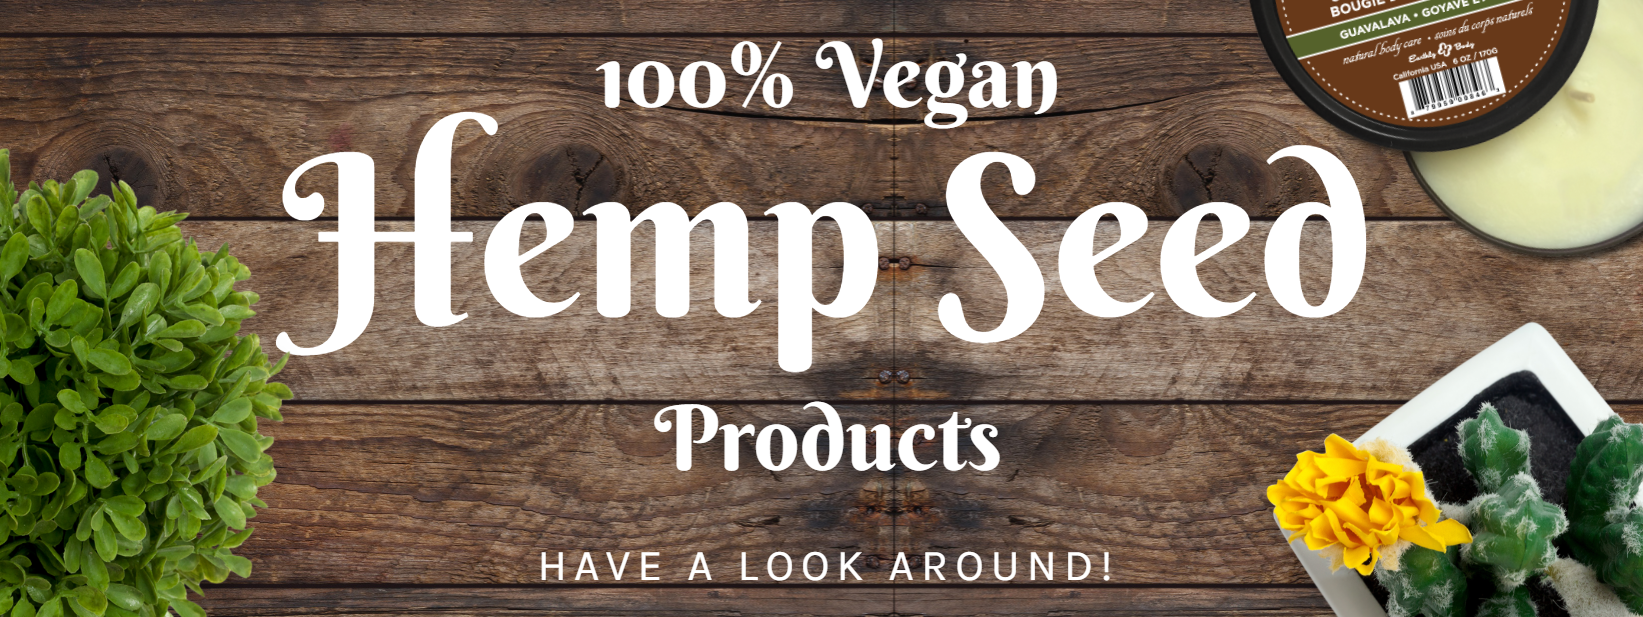 Hemp and CBD products from ultra45 Earthly Body